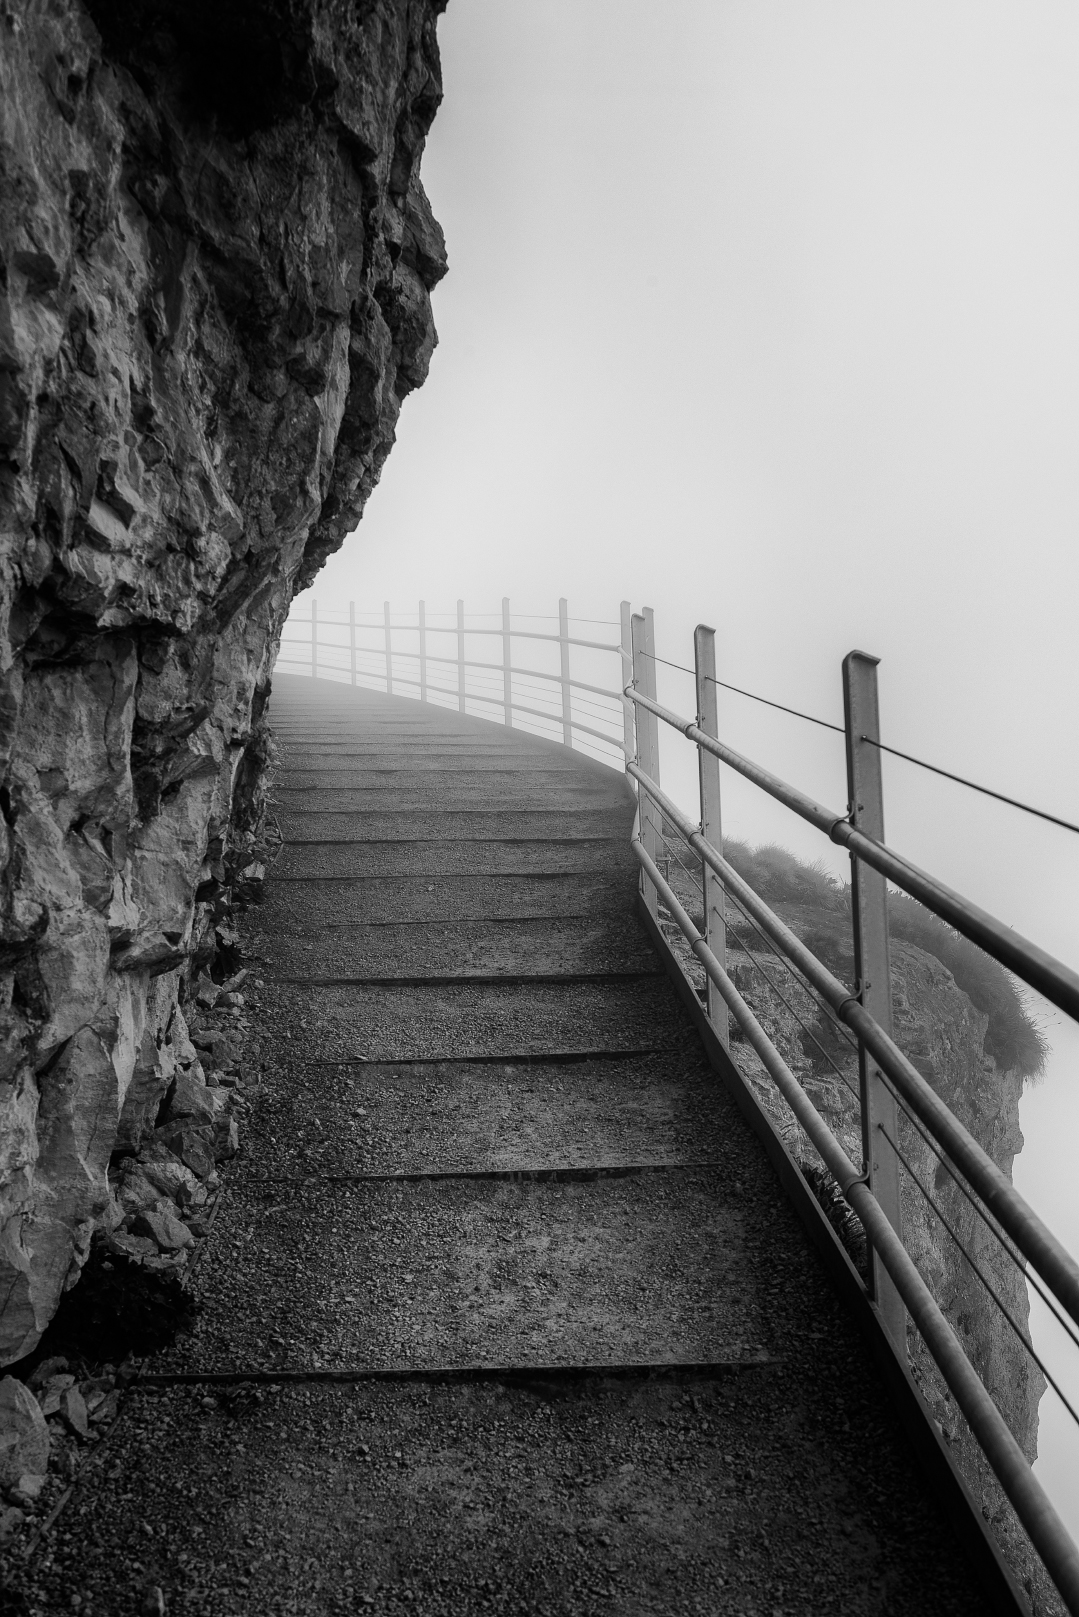 An eerie walk along the cliffside hiking back up to the Ebenalp gondola station.